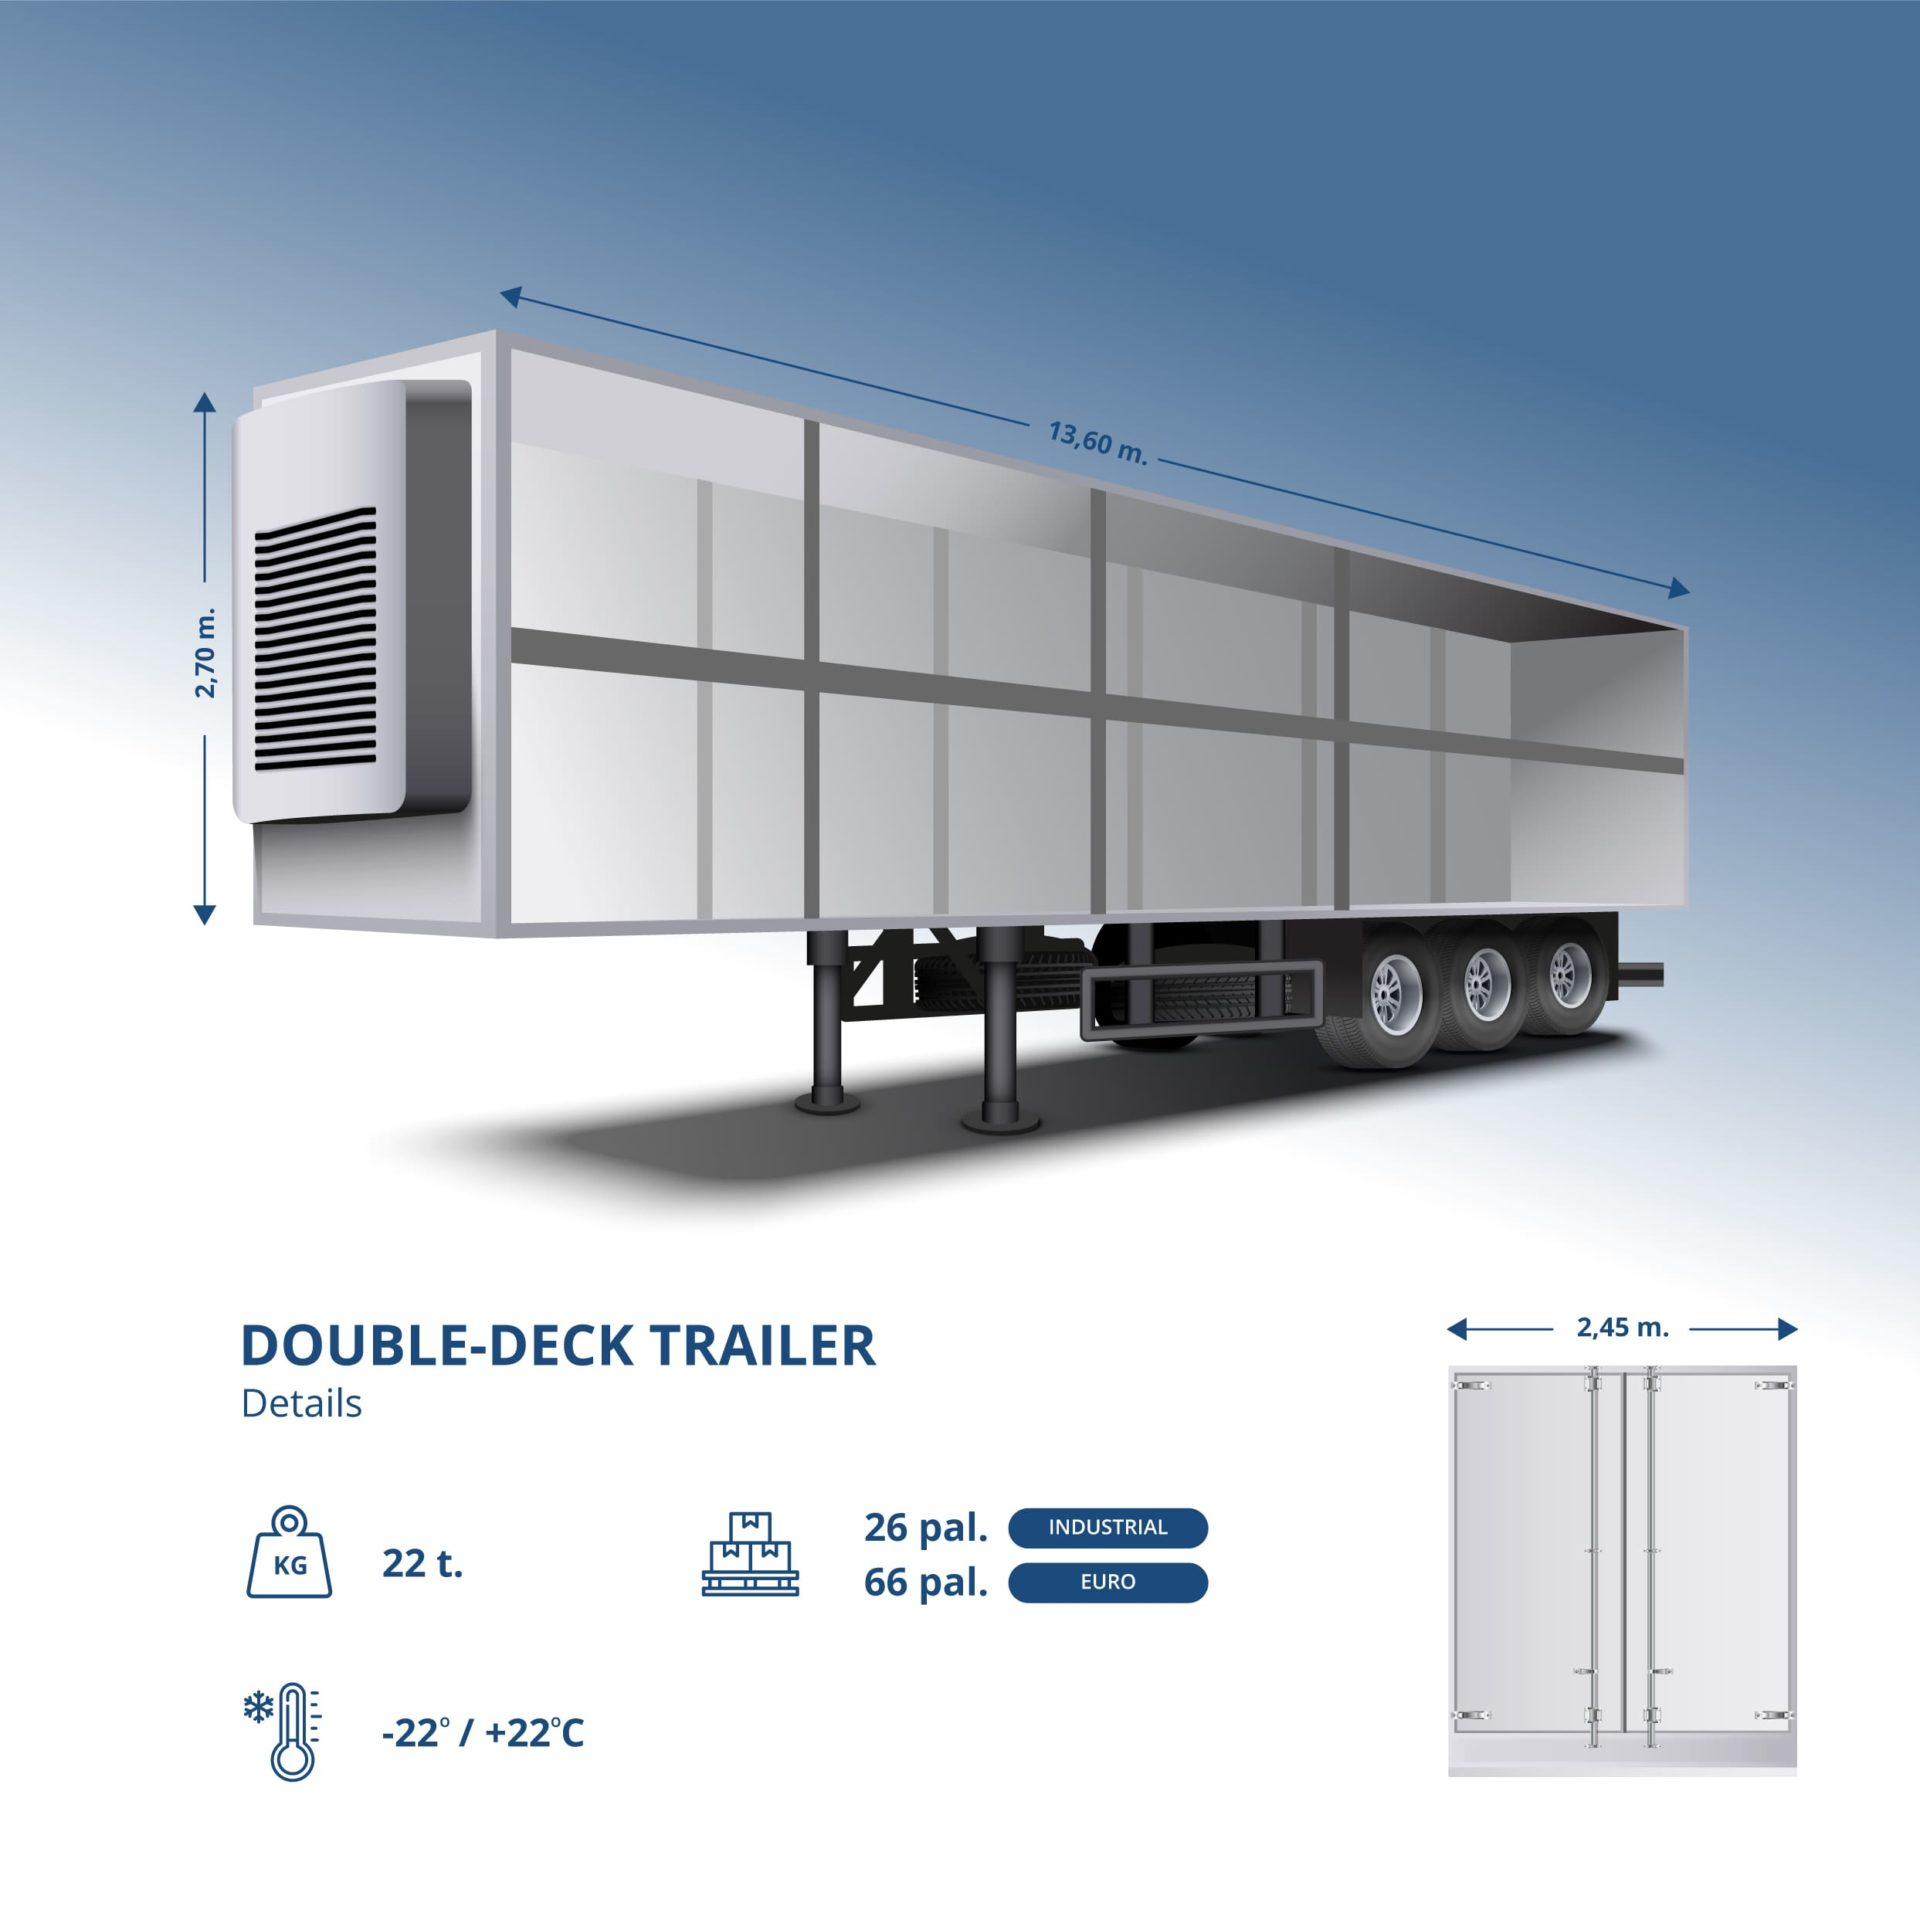 double-deck trailer